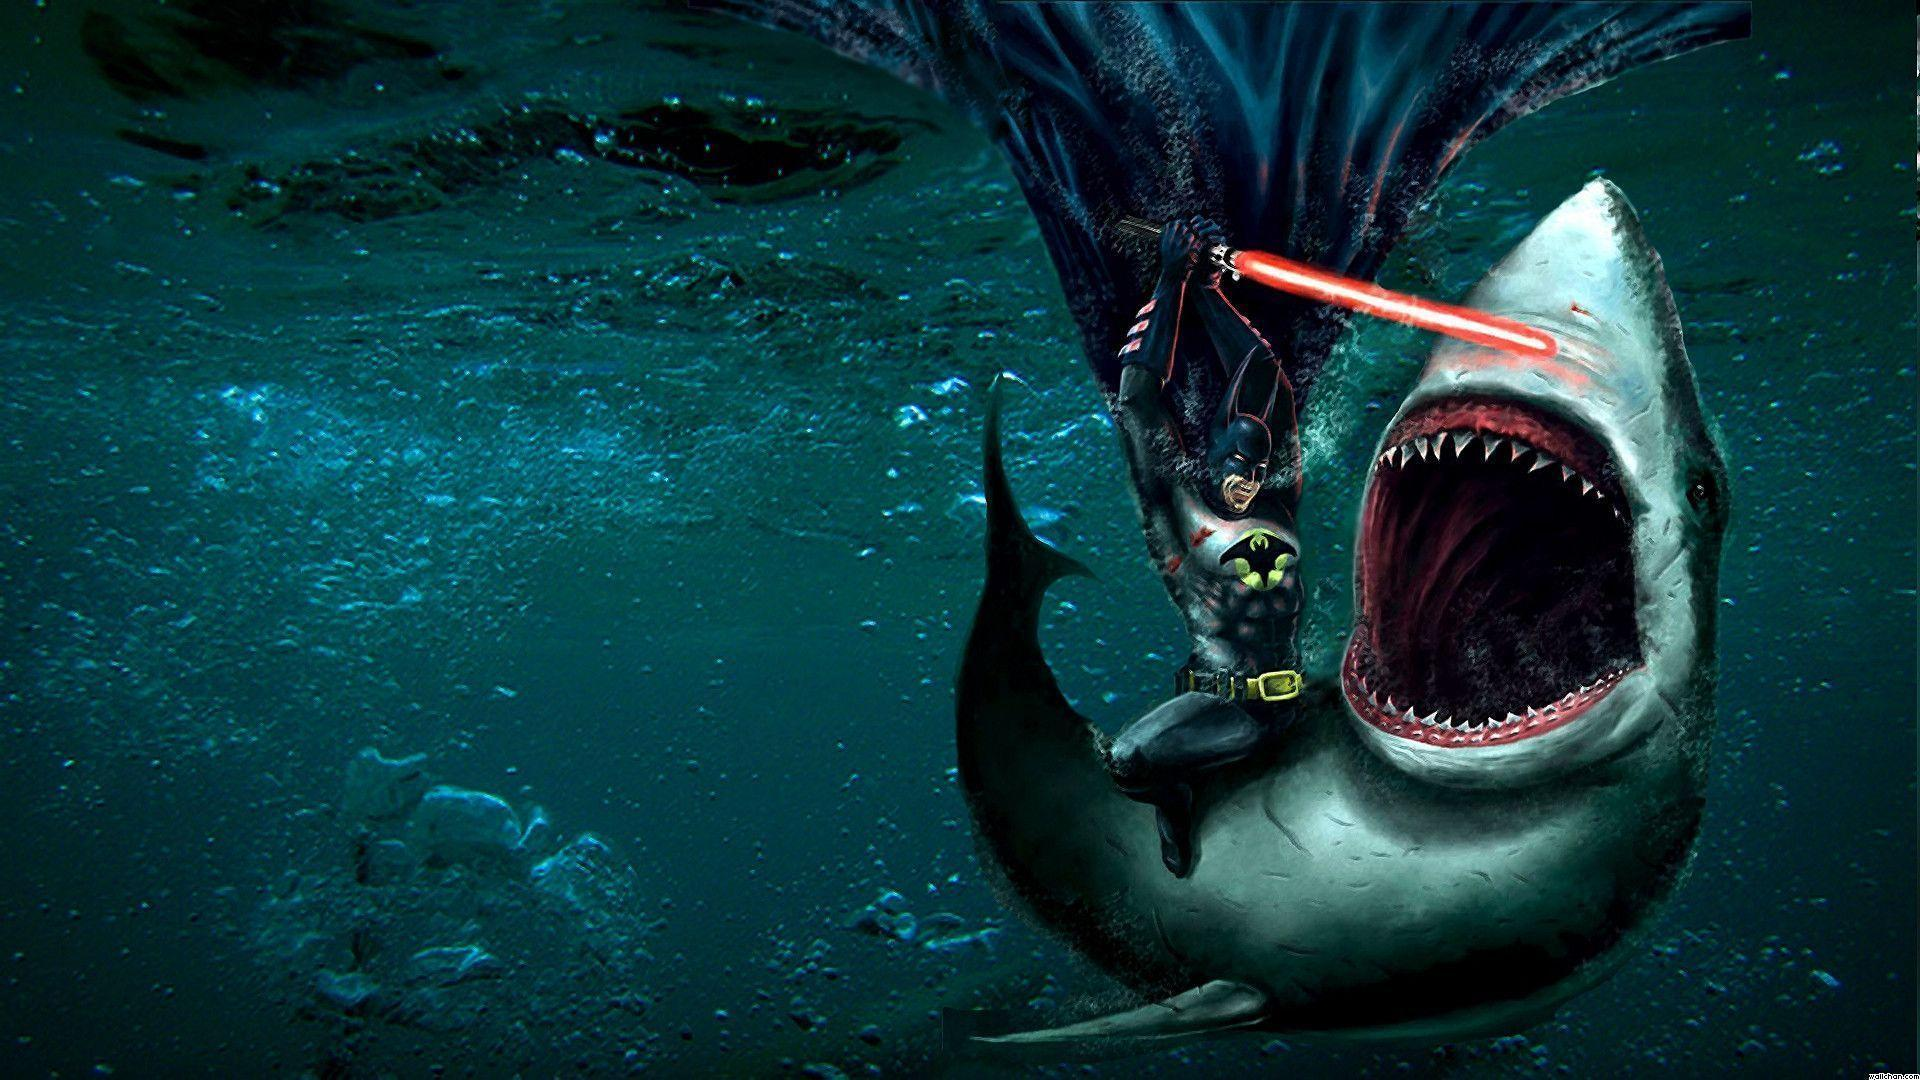 Download Batman Fighting Shark Fullhdwpp Free Wallpaper 1920x1080 ...